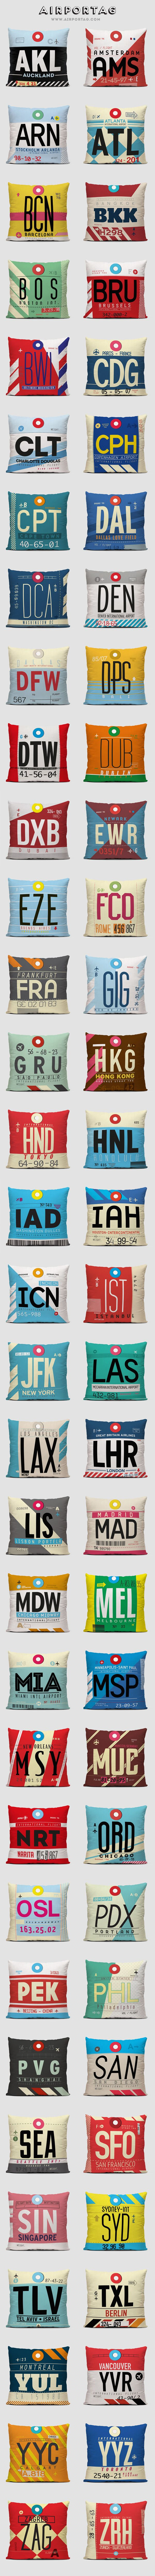 Throw pillows inspired on vintage travel luggage tags using airport IATA codes